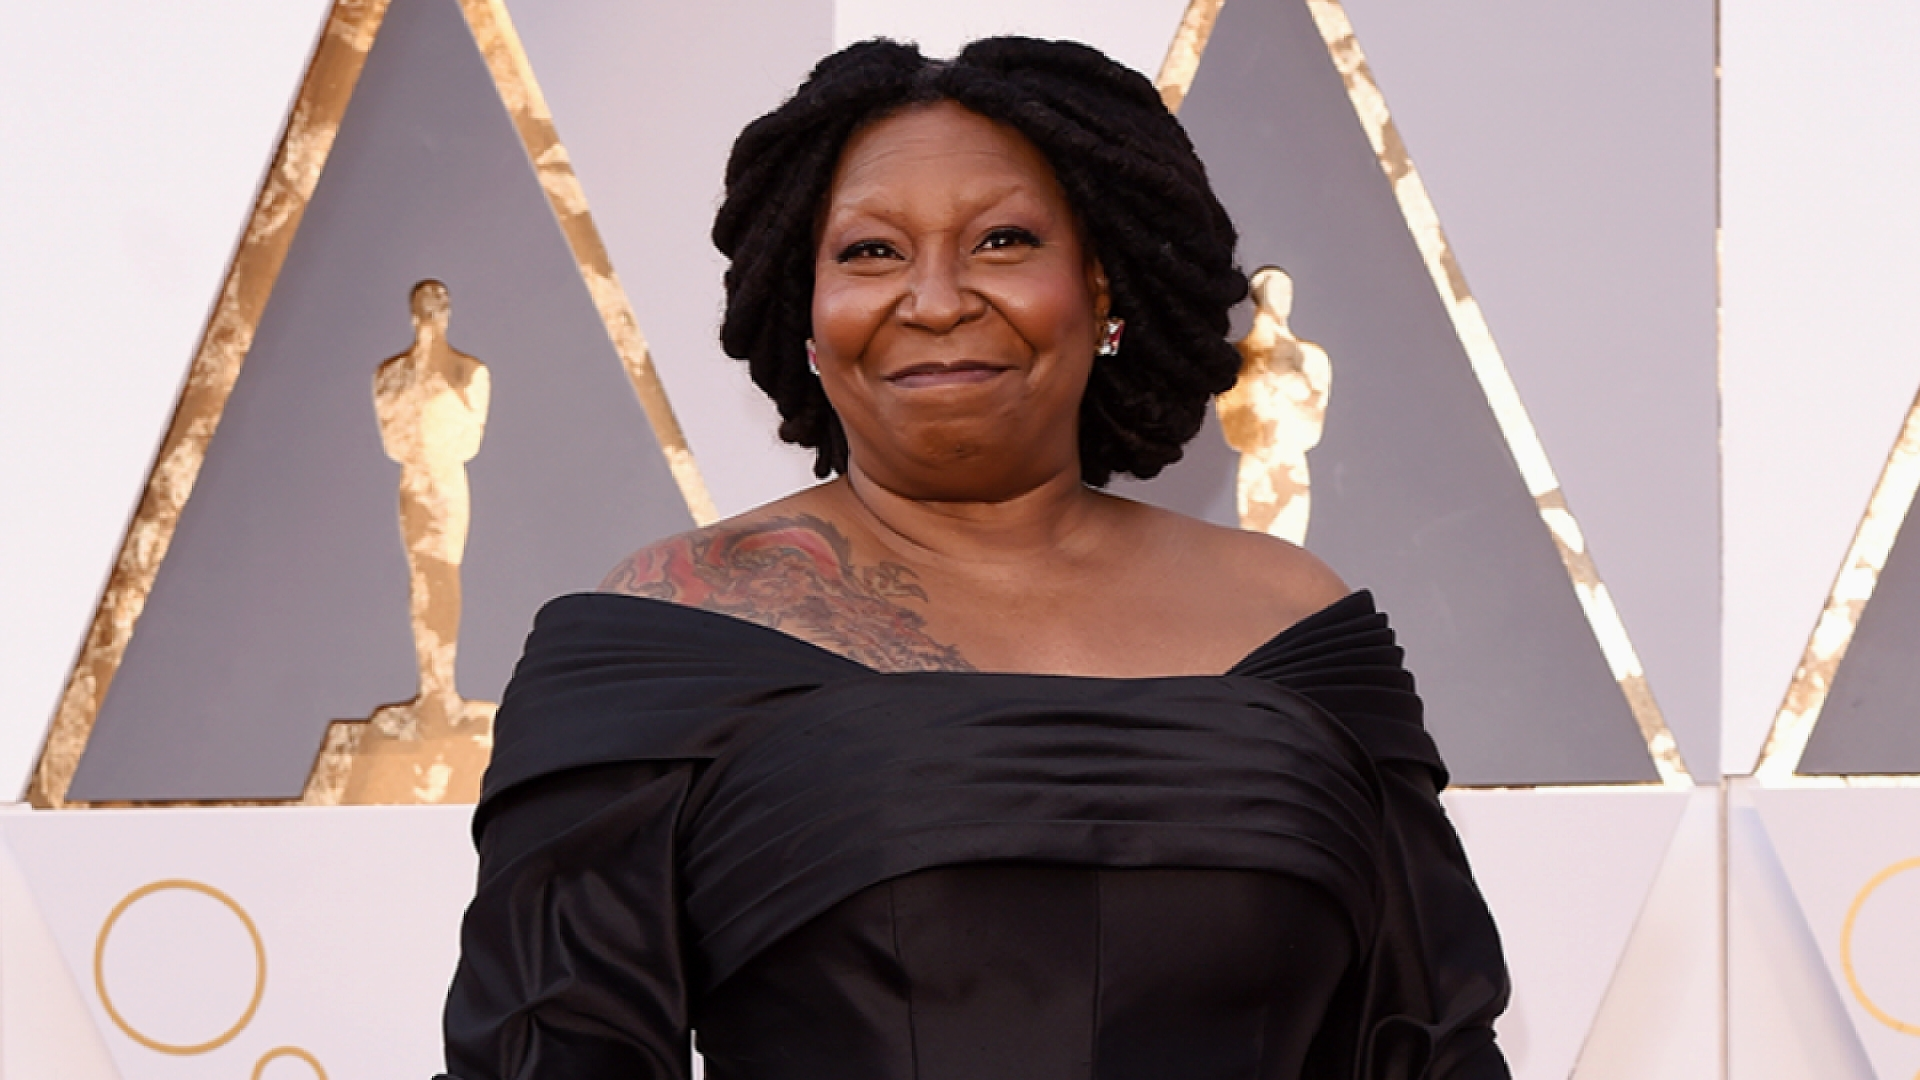 Whoopi Goldberg Reacts to Oprah Winfrey Oscars Flub